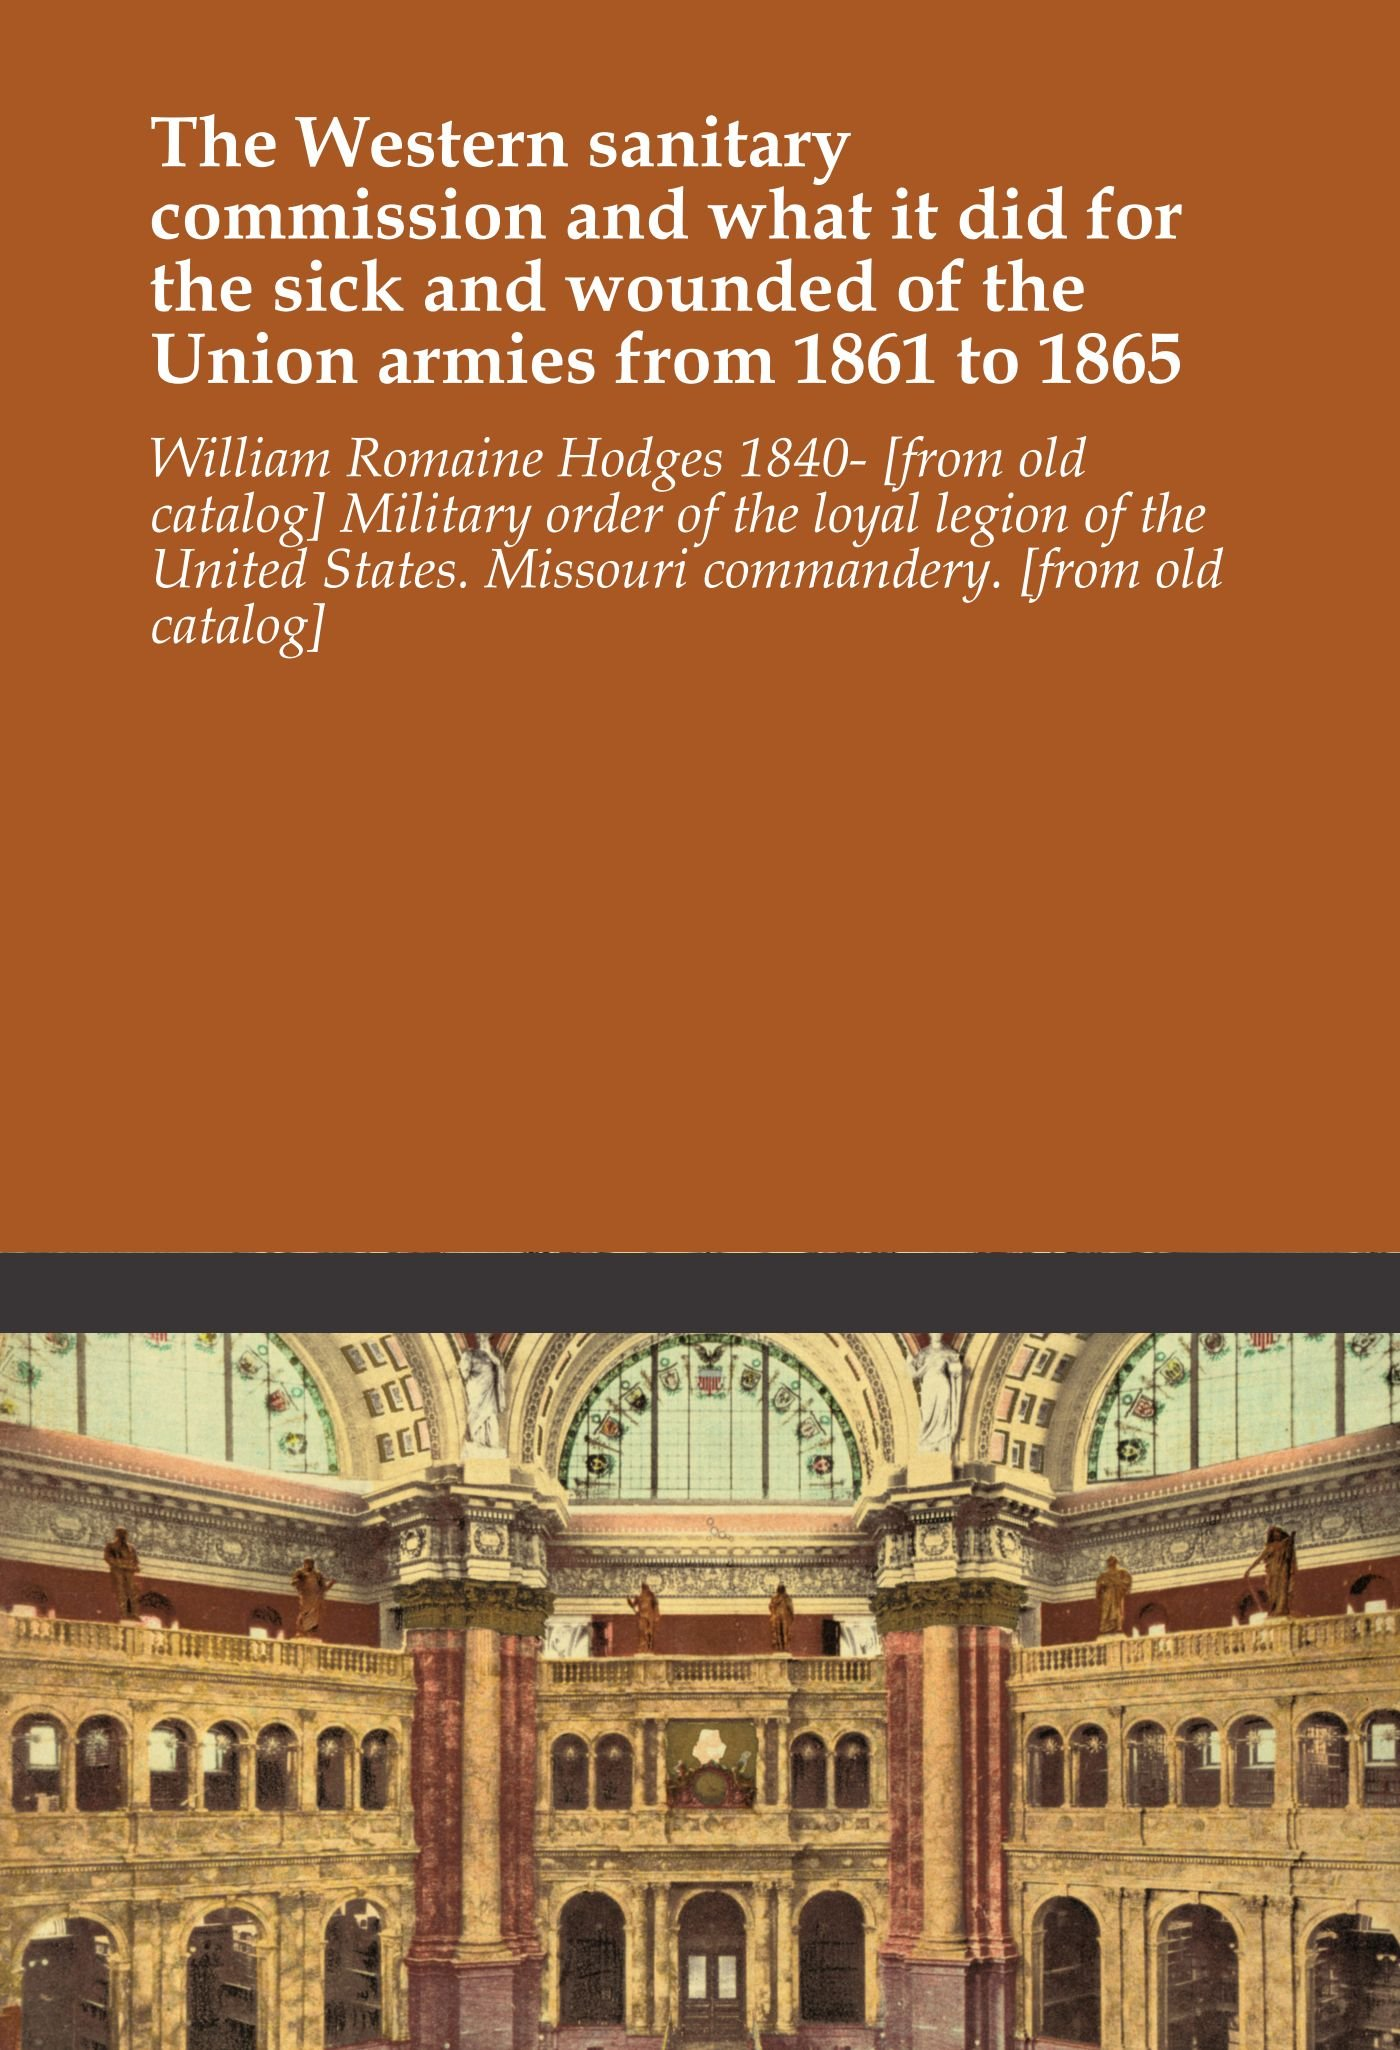 The Western sanitary commission and what it did for the sick and wounded of the Union armies from 1861 to 1865 pdf epub